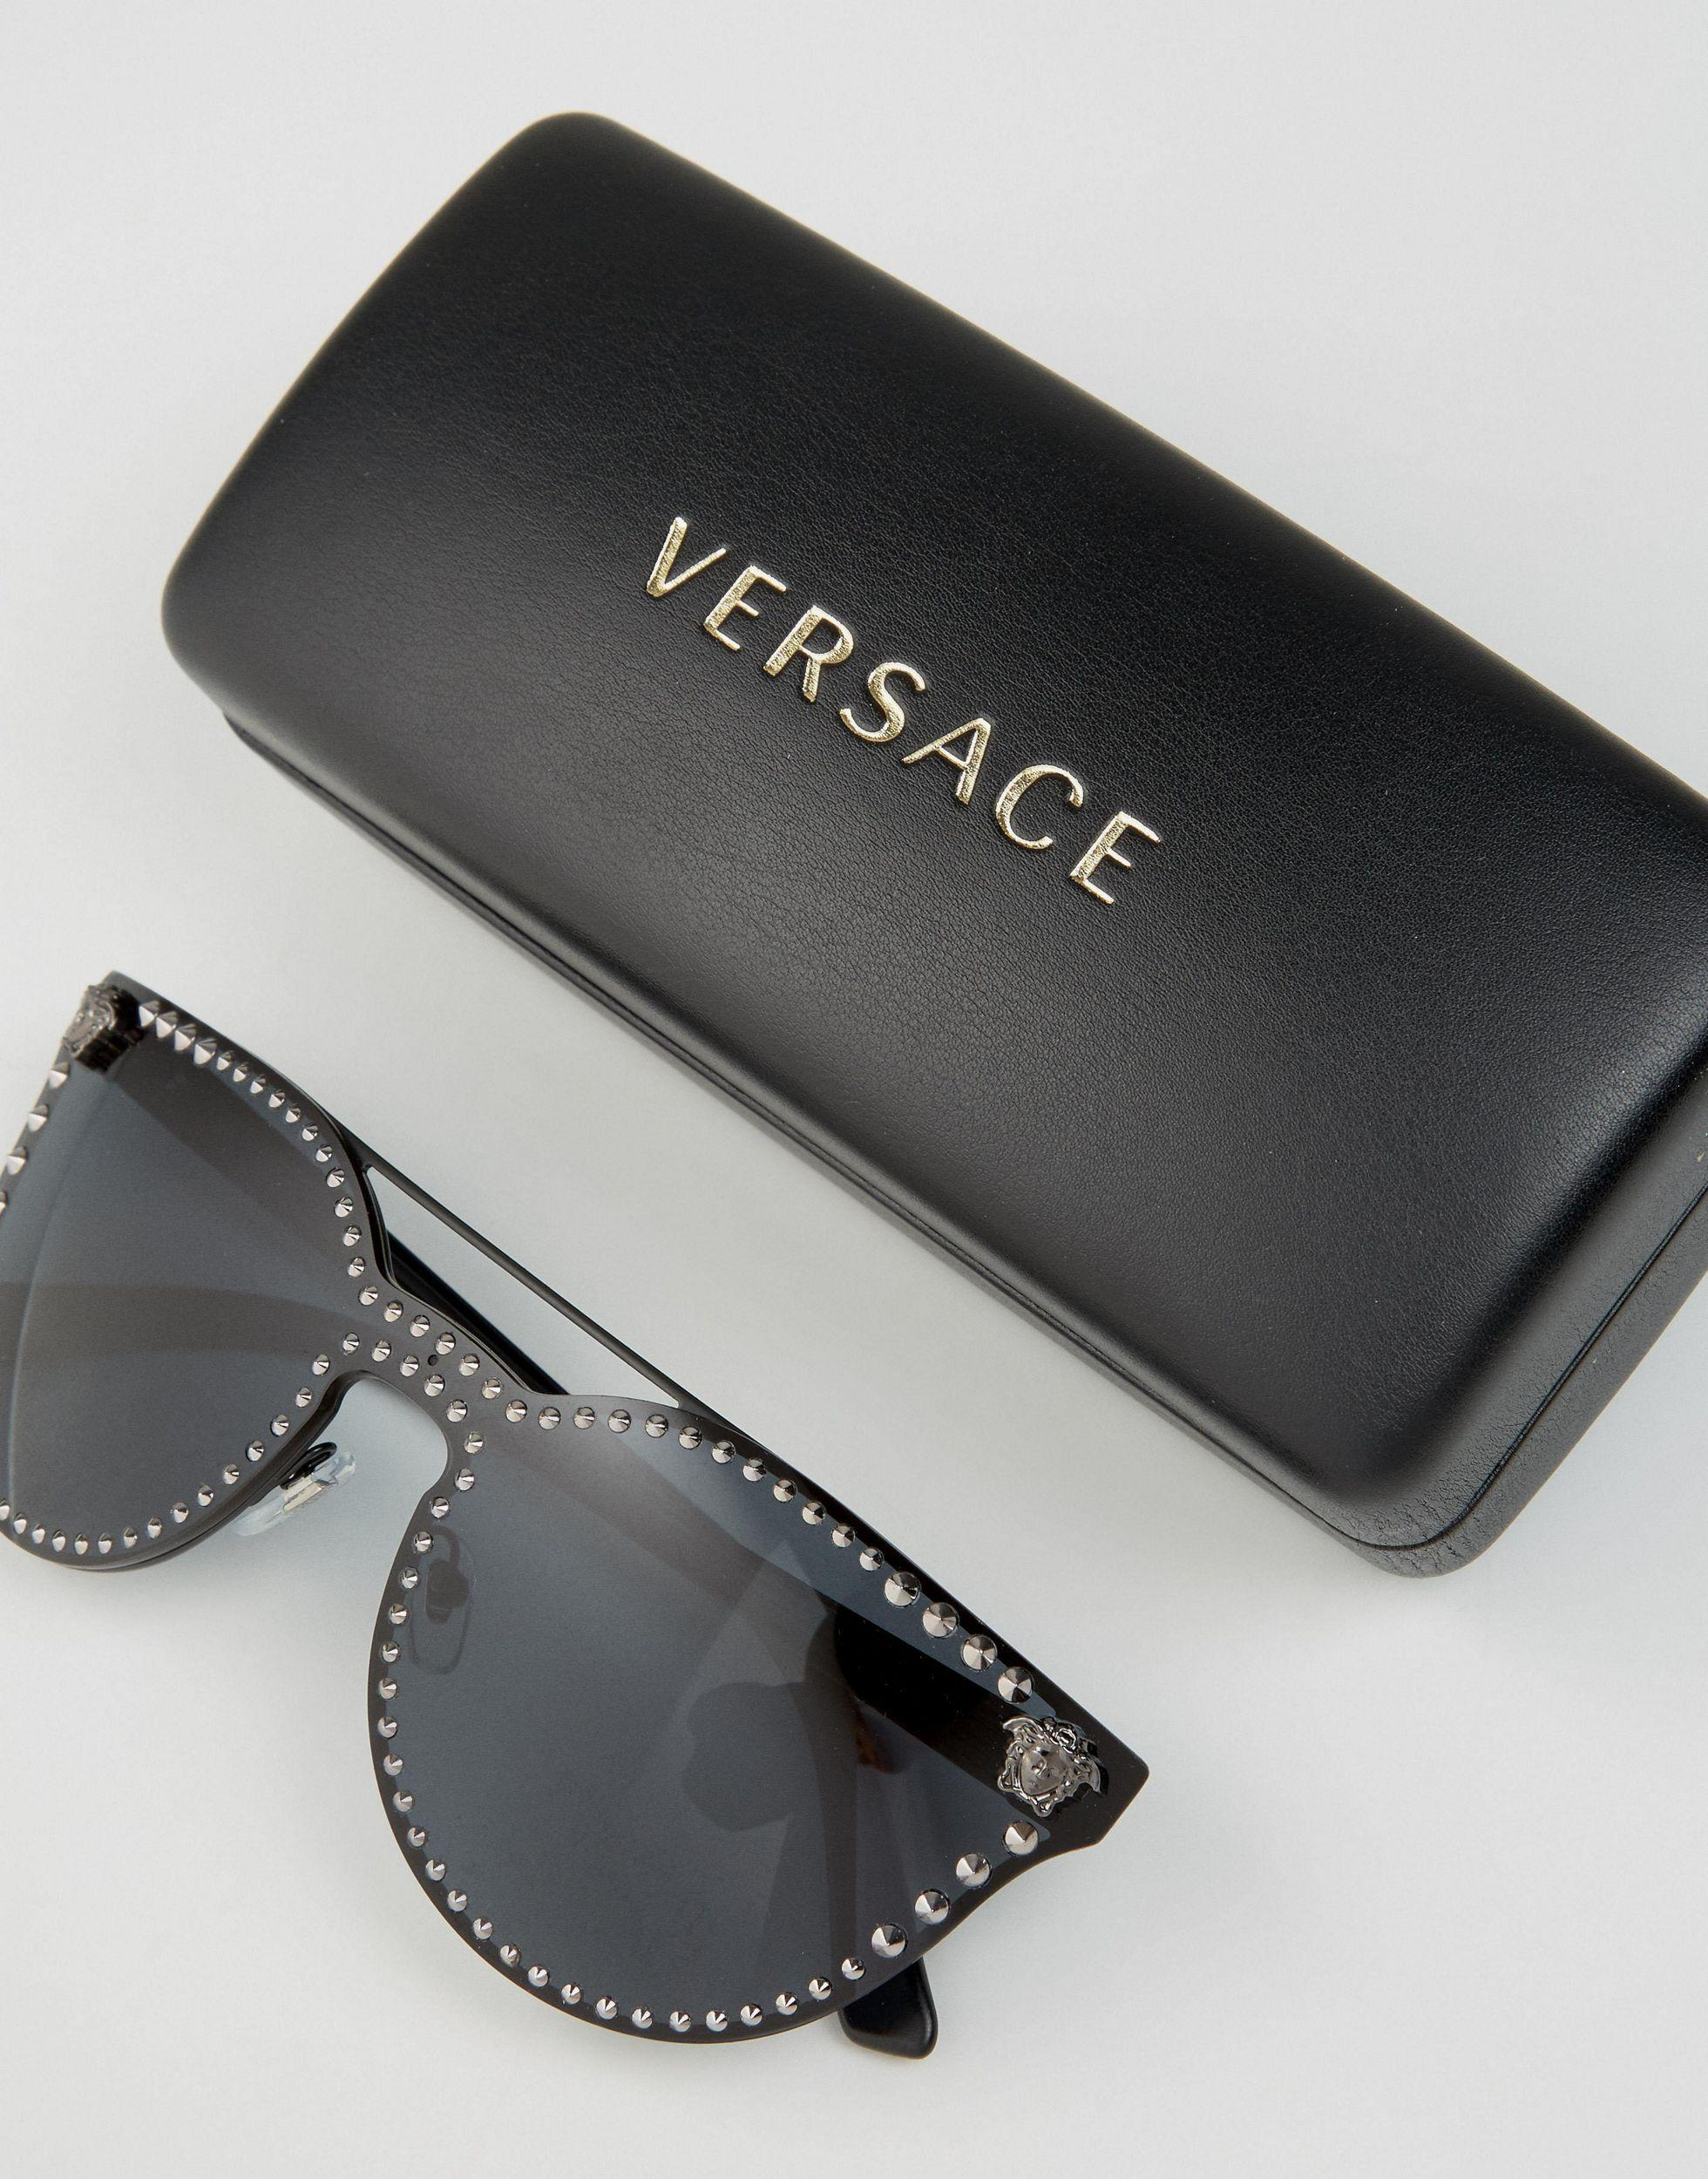 Versace Cateye Sunglasses With Metal Brow Bar And Studding in Black